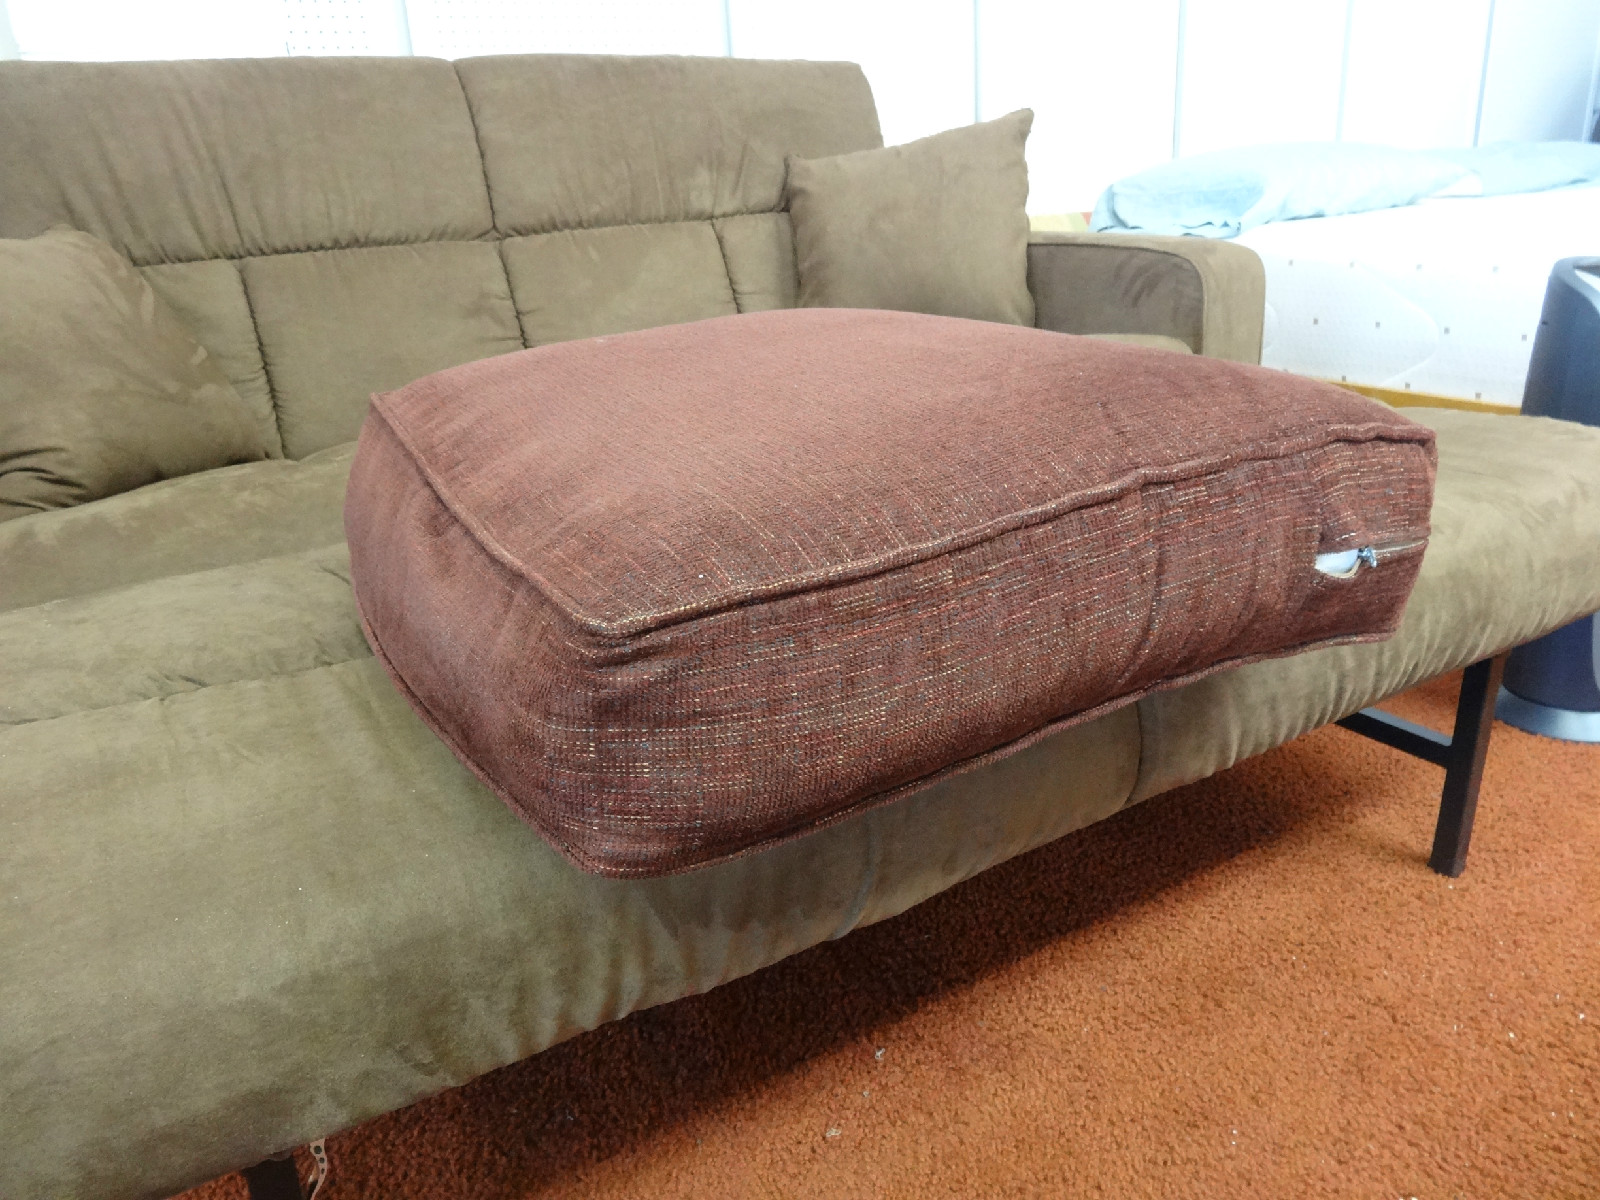 Couch Cushion Replacement Melbourne Ufo Upholstery Fabric